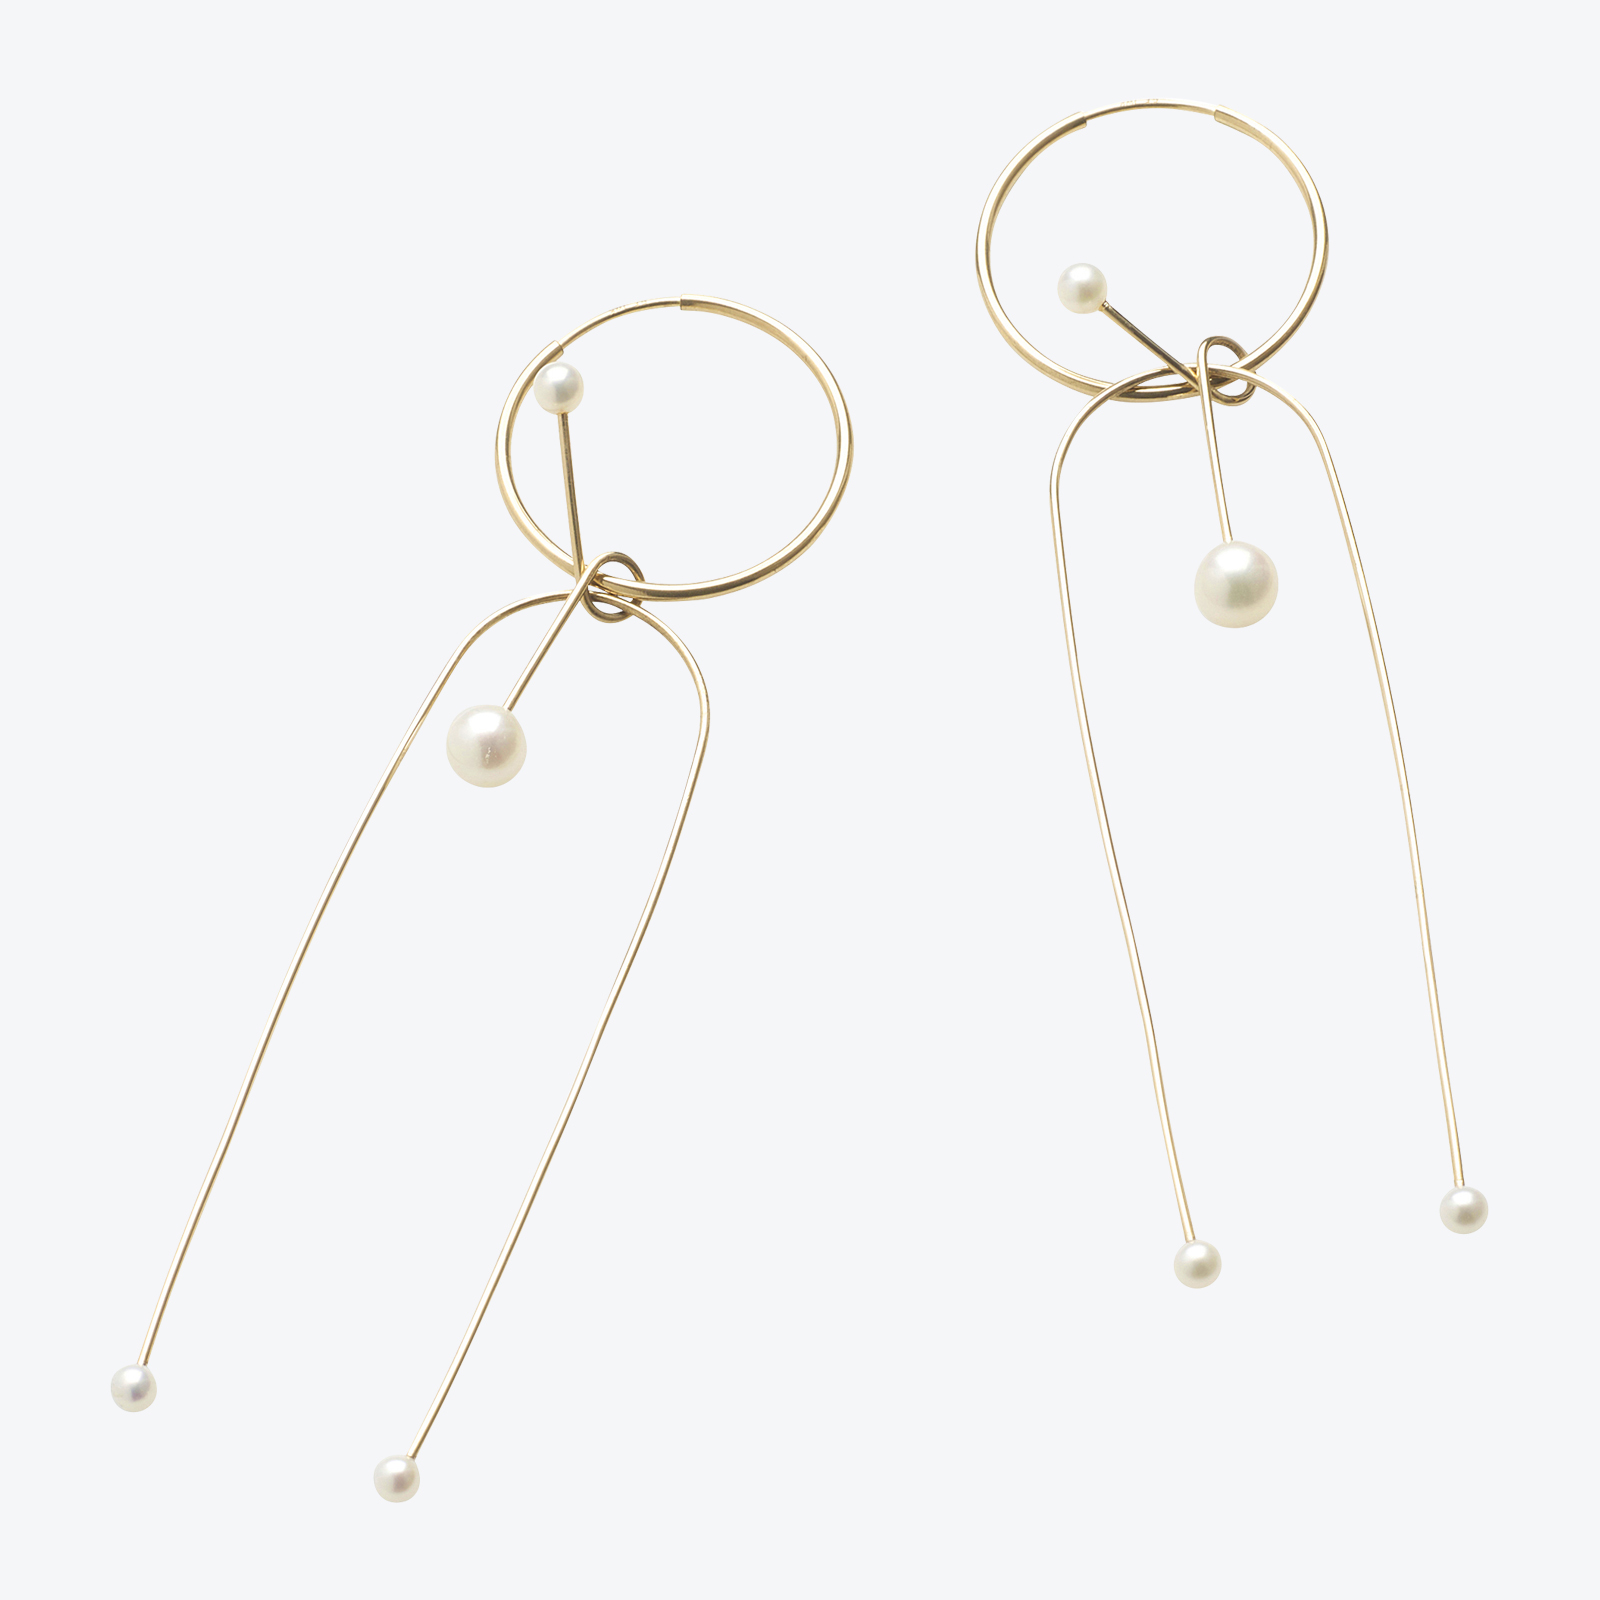 Large Twirl Earrings In Gold Filled With Freshwater Pearls By Pip Stent.jpg